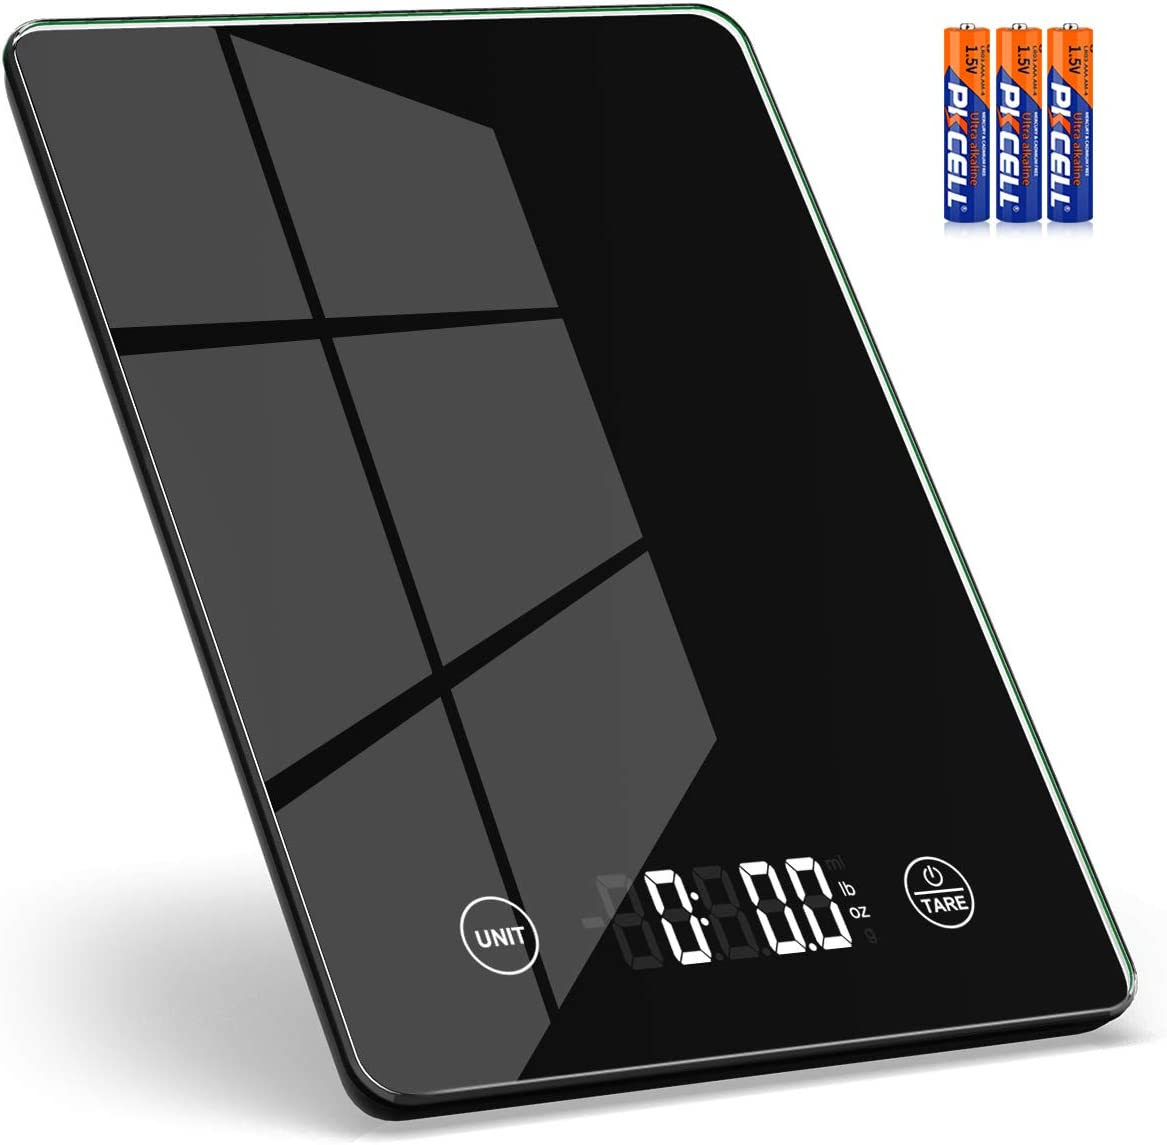 Mik-Nana Food Scale - 5KG/11lb Digital Food Kitchen Scale Weight Grams and Ounces for Baking and Cooking, Tare Function and LED Backlit Display - 1g/0.1oz Precise Graduation, Tempered Glass